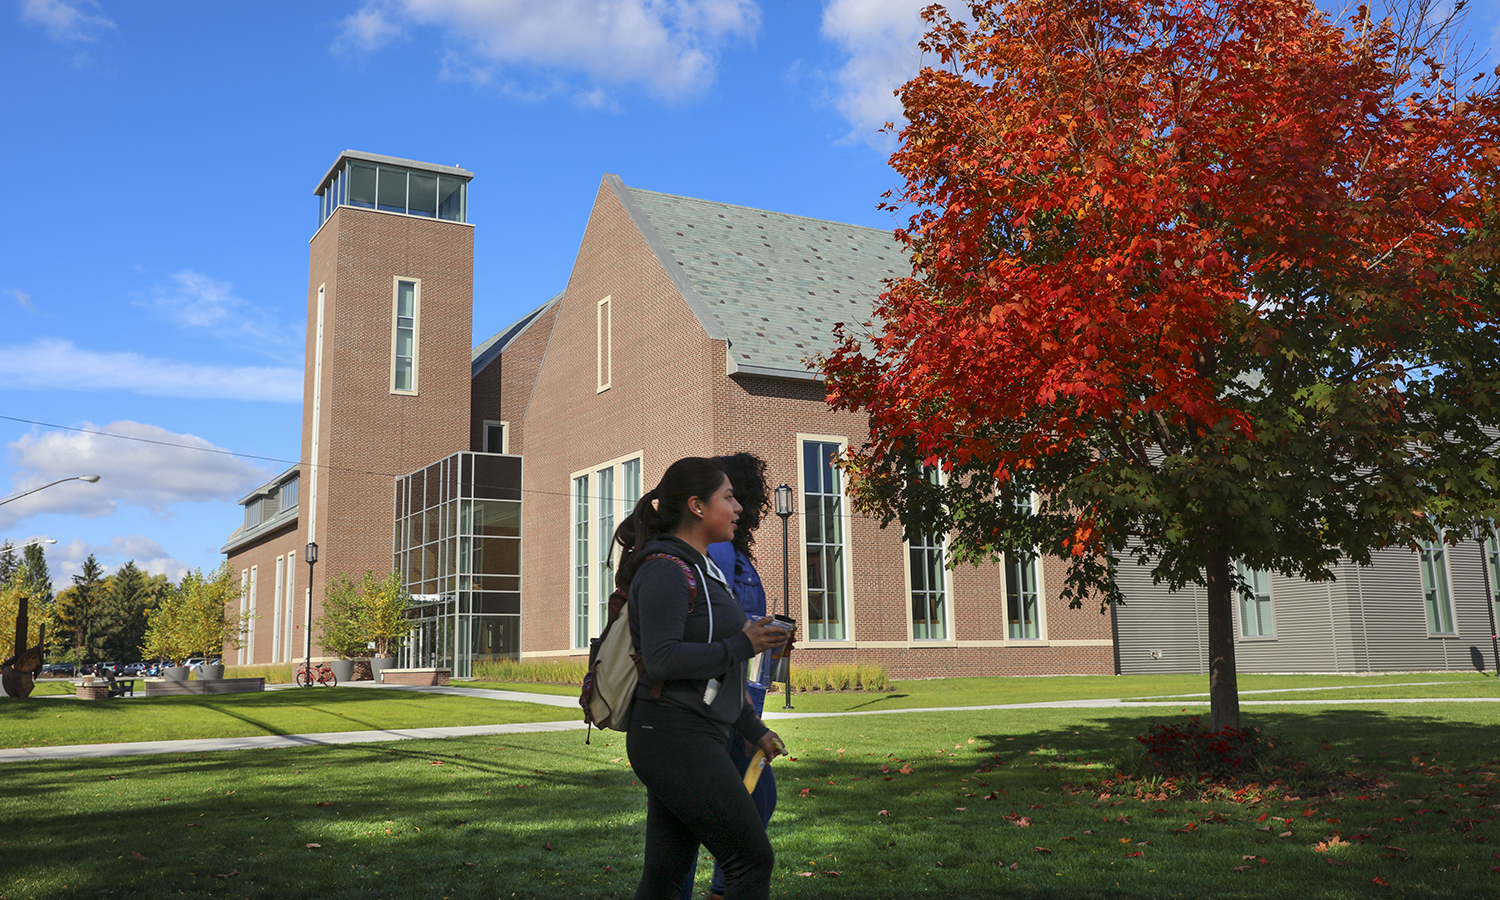 Students walk in front of the Gearan Center for the Performing Arts on a crisp fall day.